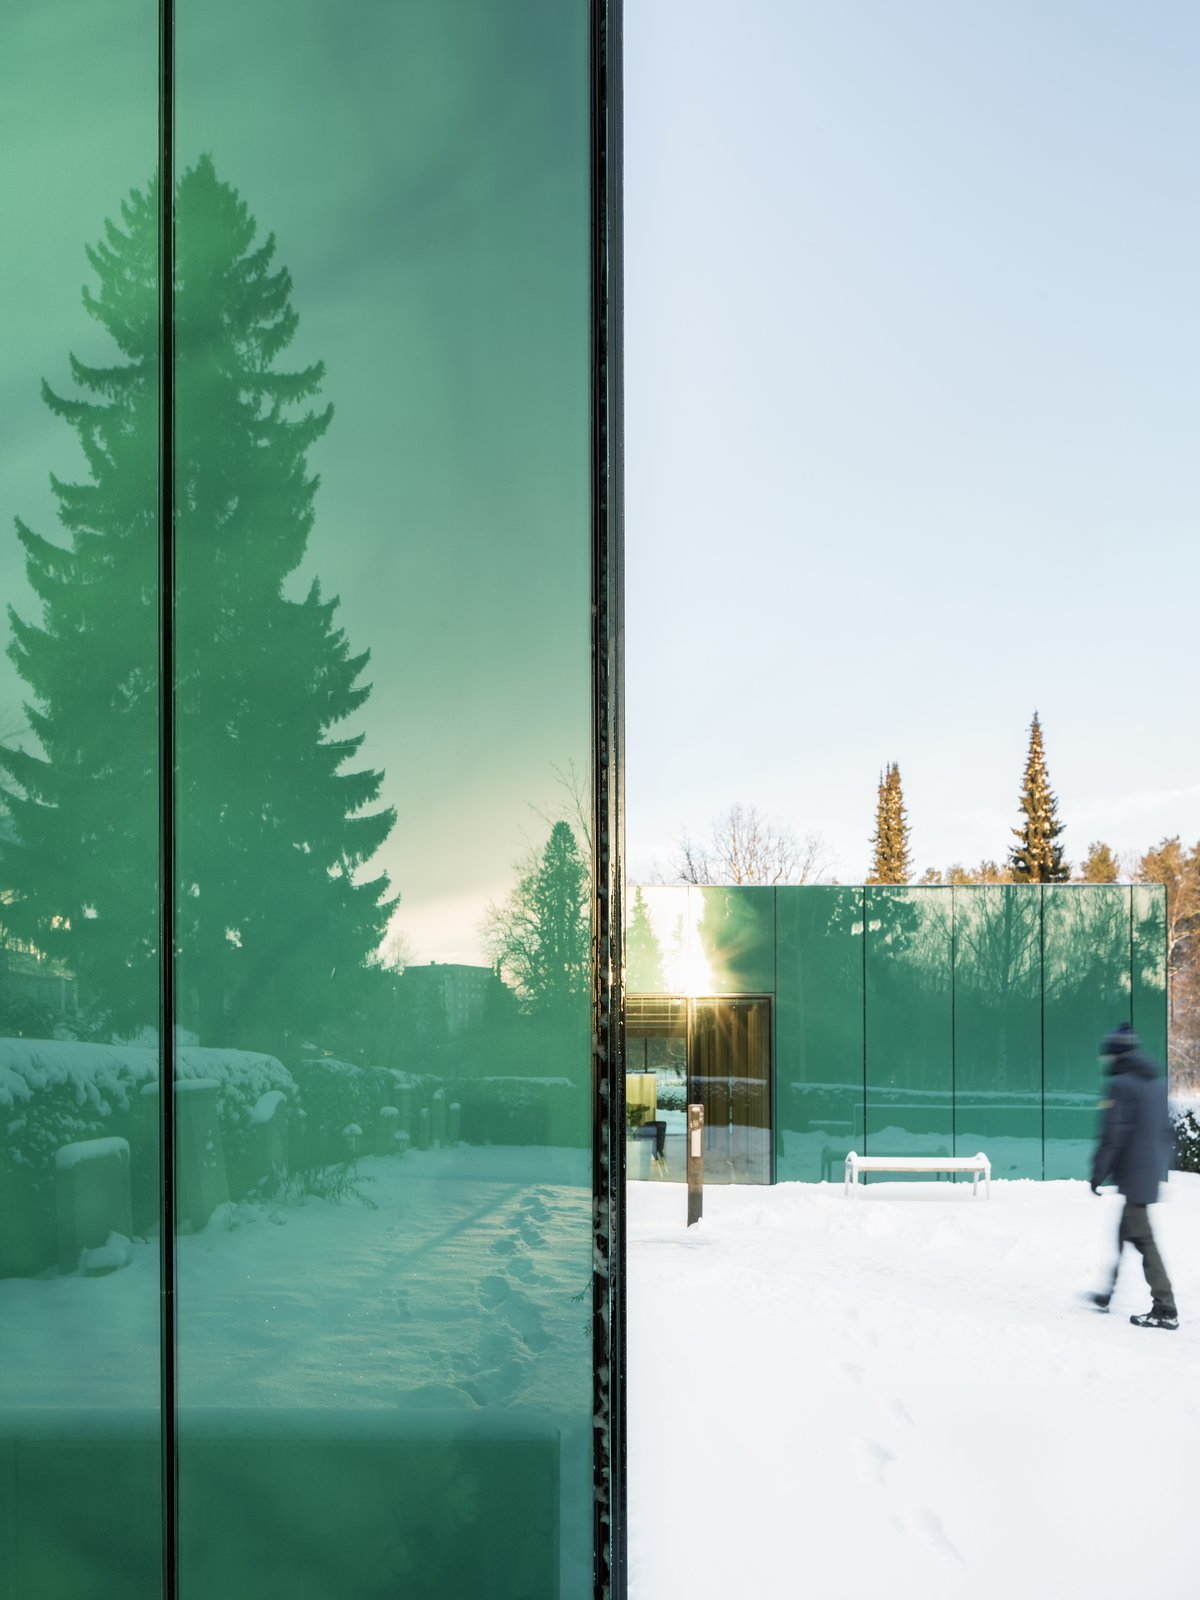 Exterior, Flat RoofLine, Metal Roof Material, Metal Siding Material, and Glass Siding Material One of architect Gert Wingårdhs' favorite parts of the building is the reflective glass.  Photo 2 of 7 in Architect Gert Wingårdh Builds a Dazzling Emerald Office in a Swedish Cemetery